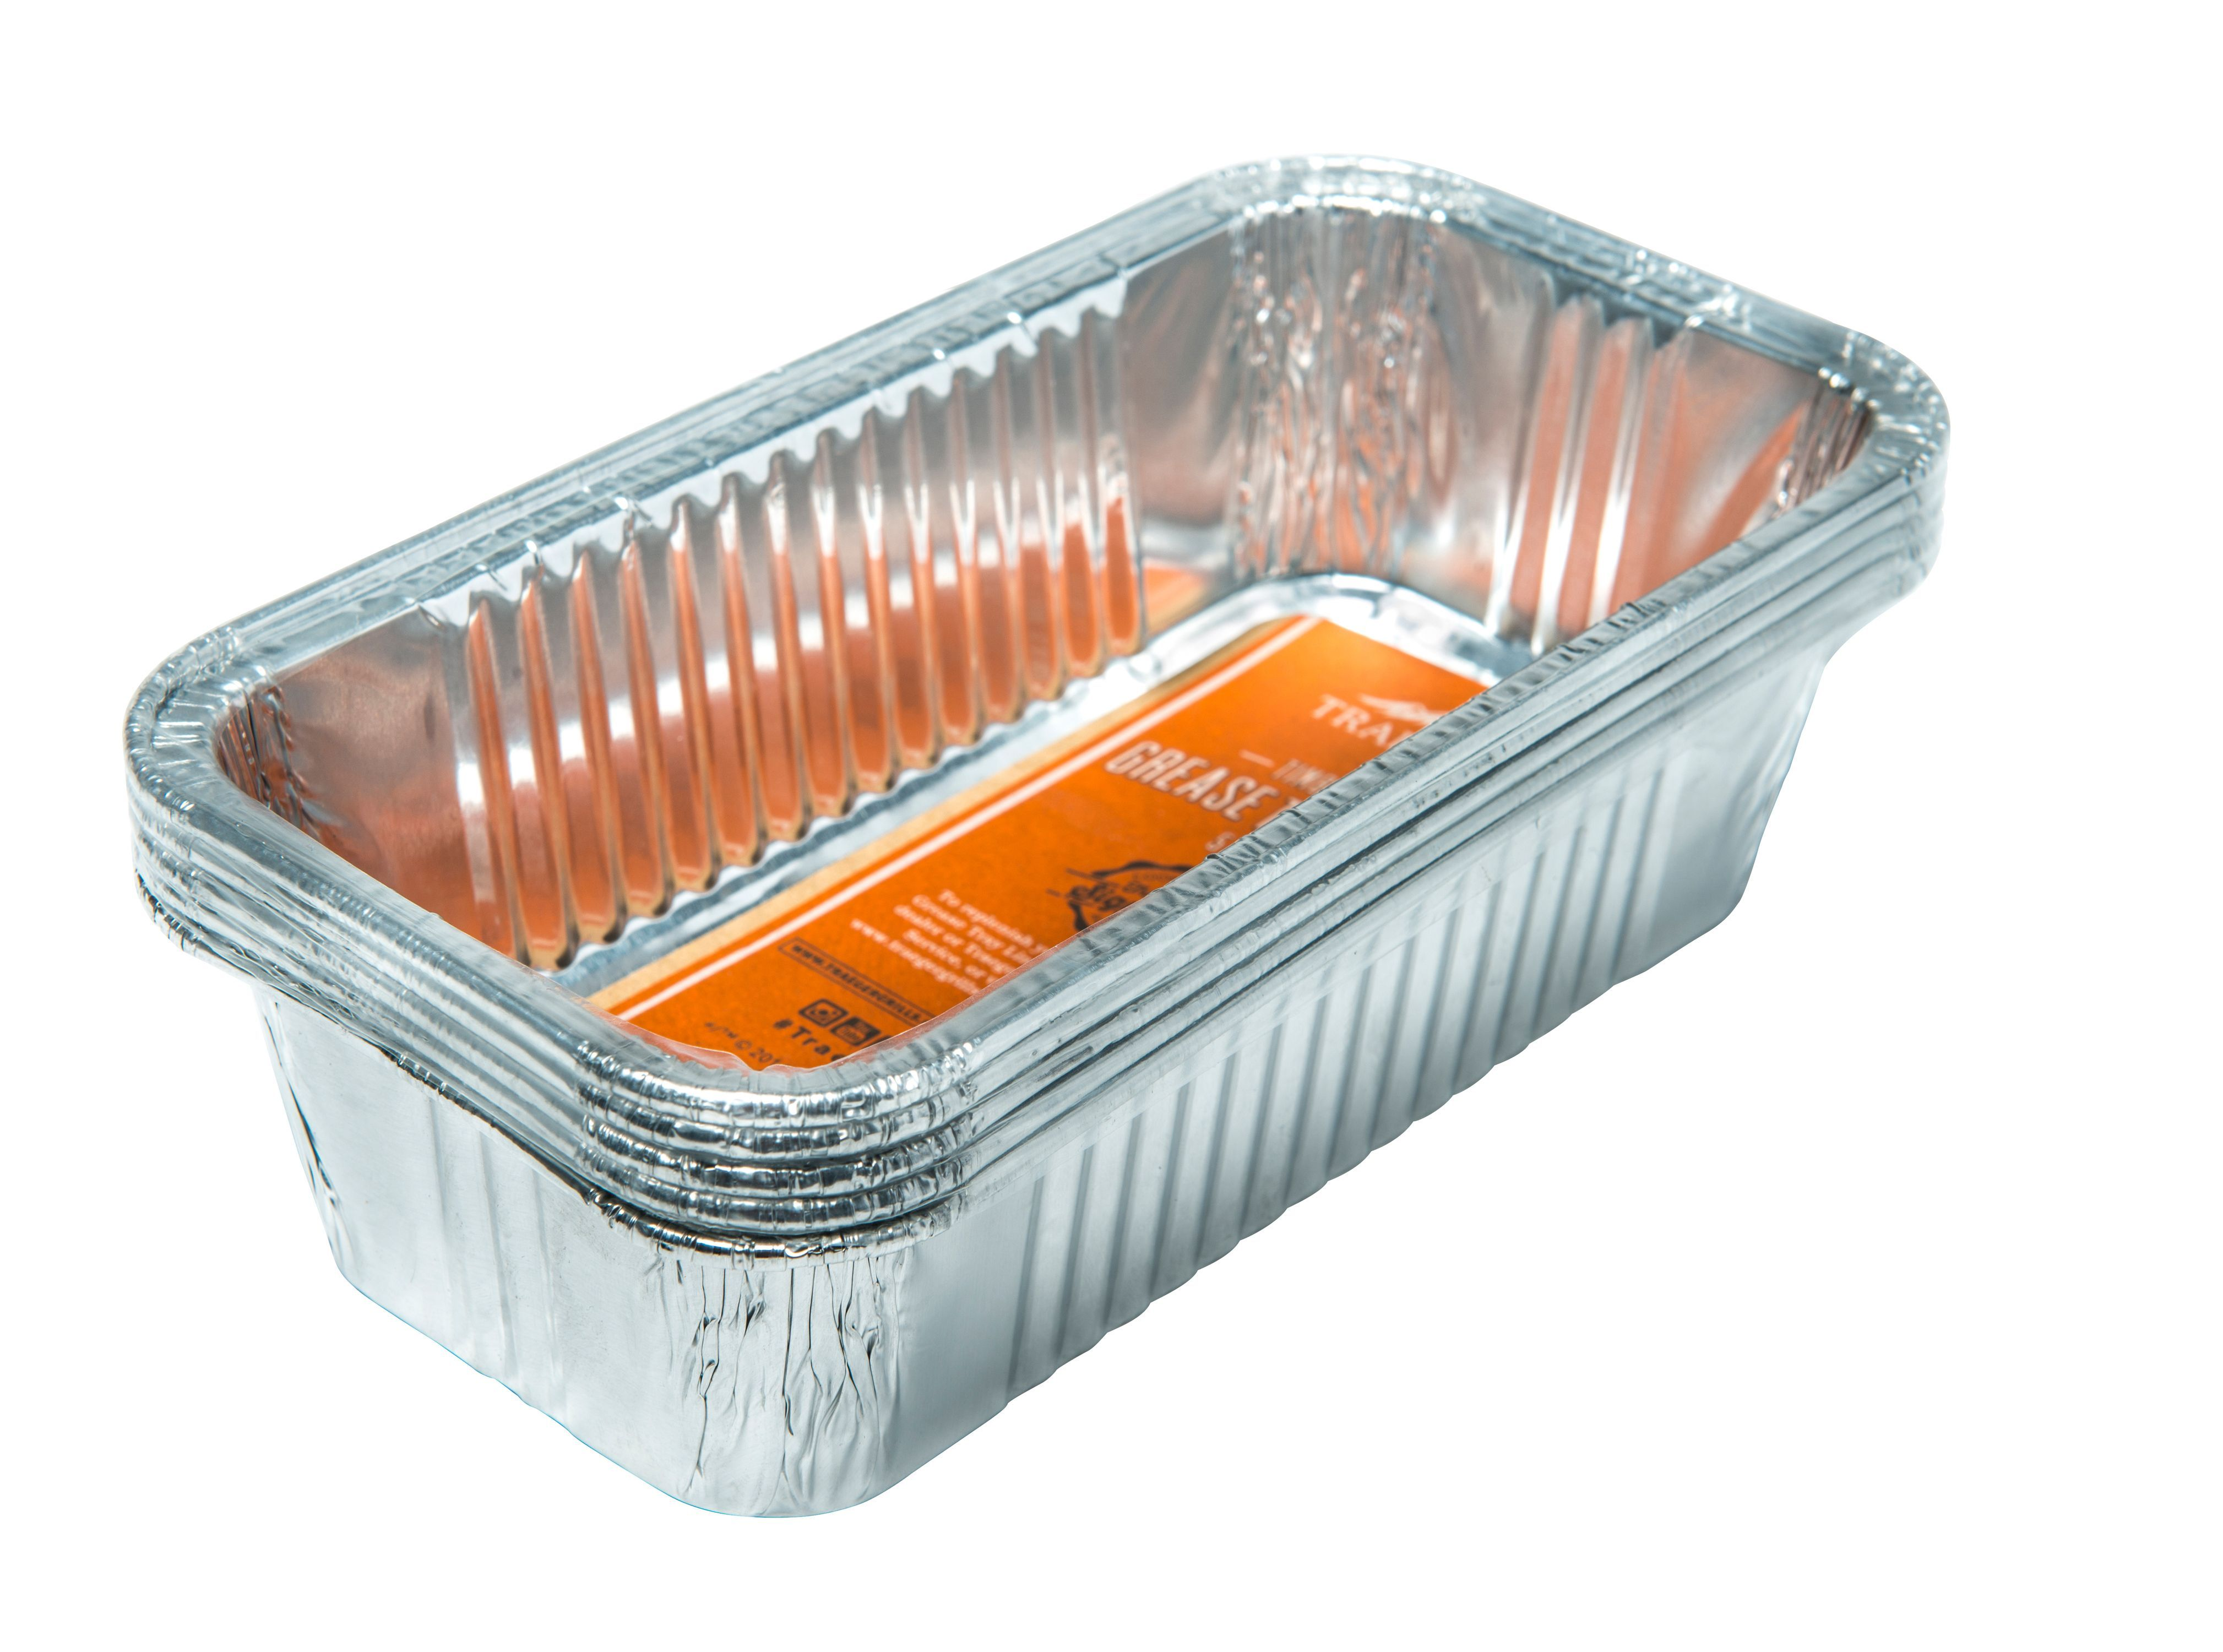 Traeger | Grease Tray Liner | Timberline 5 Pack